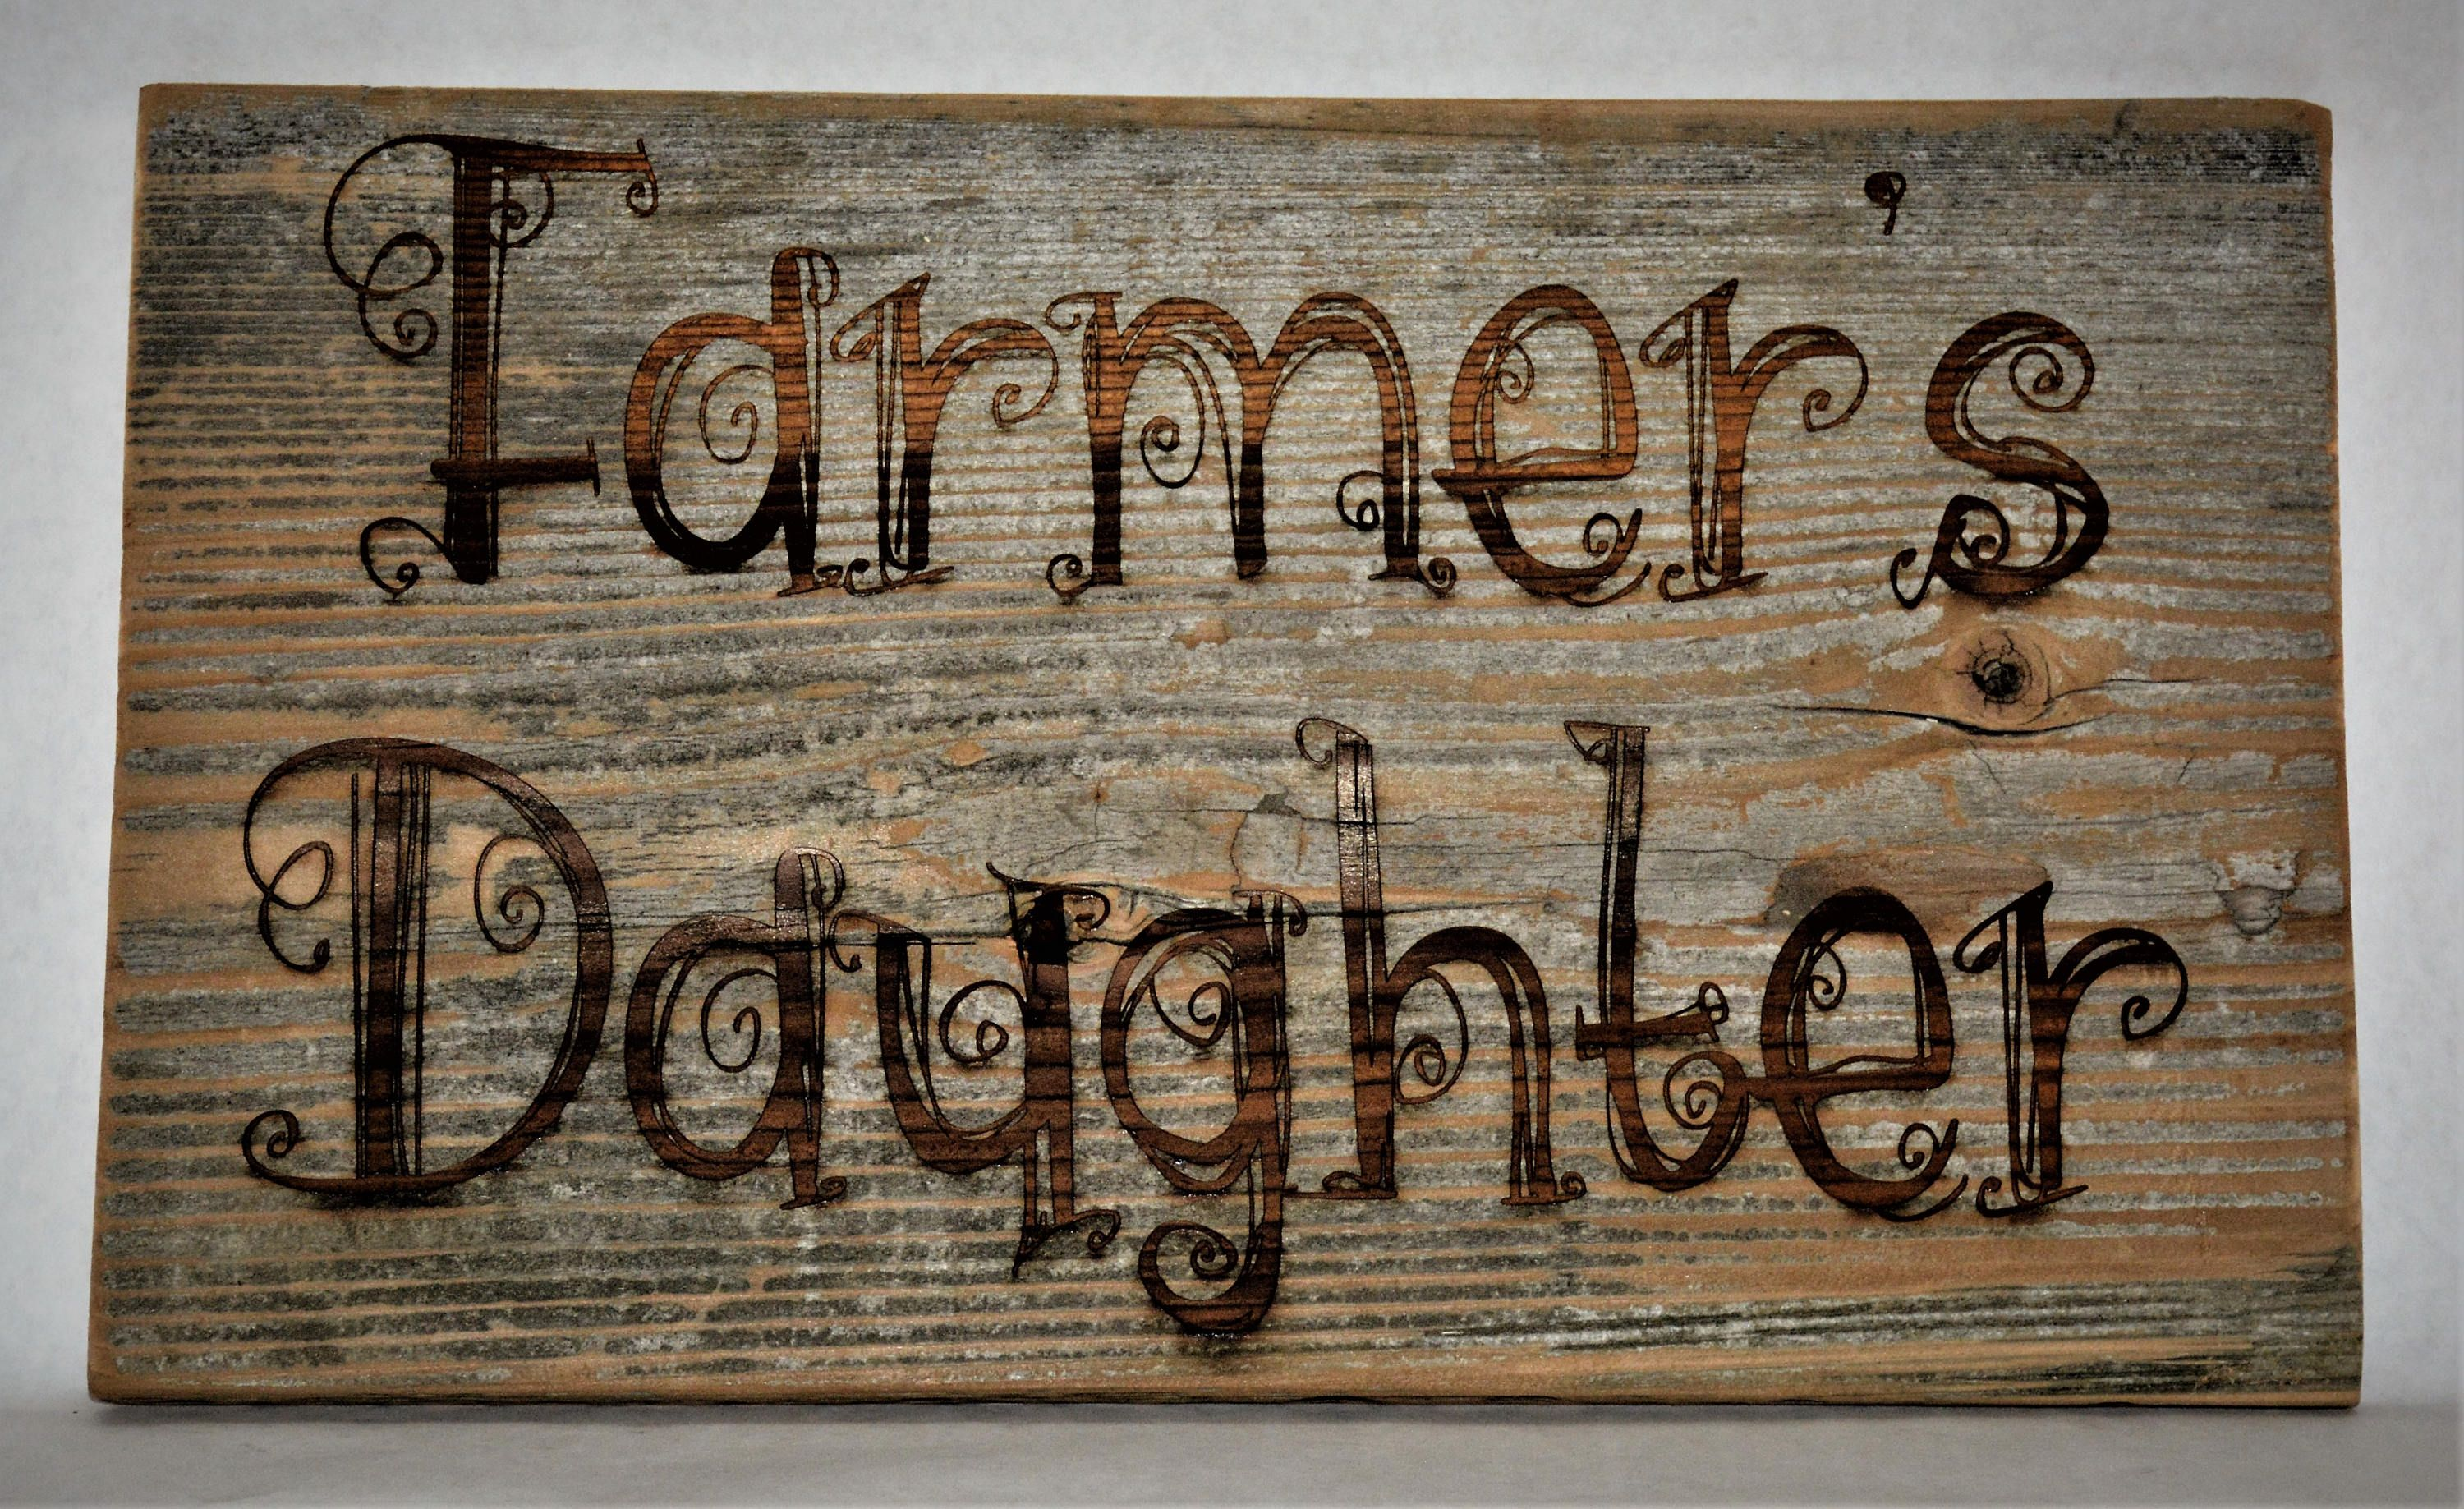 Barn Board Custom Engraved Wooden Signs All Engraving Included Etsy In 2020 Barn Wood Signs Old Barn Wood Barn Board